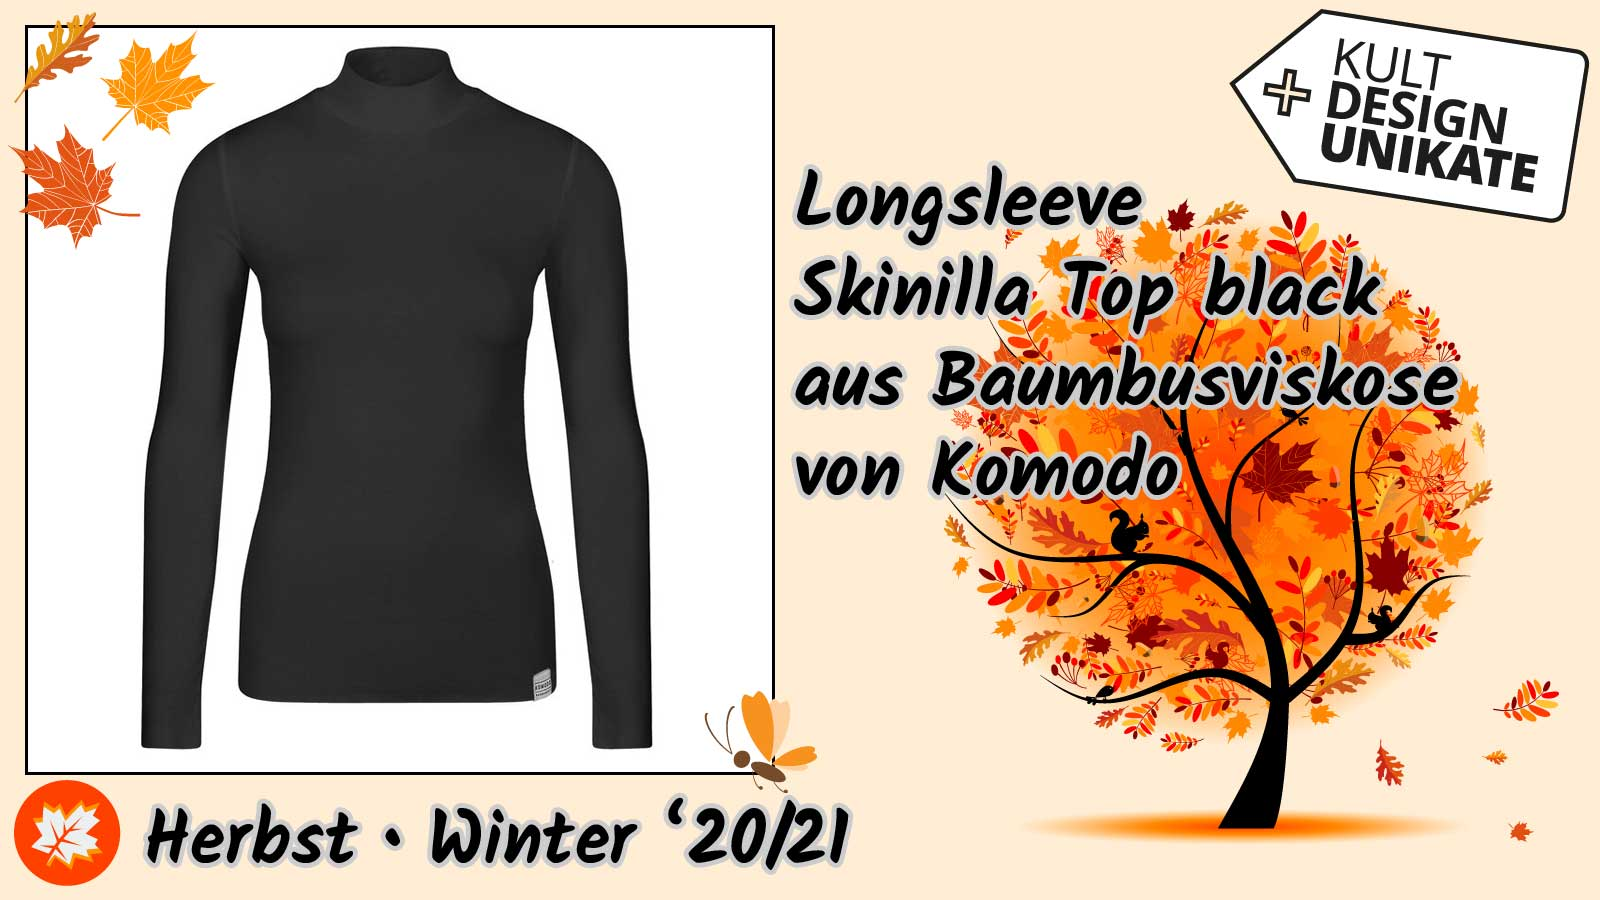 komodo-Skinilla-Top-black